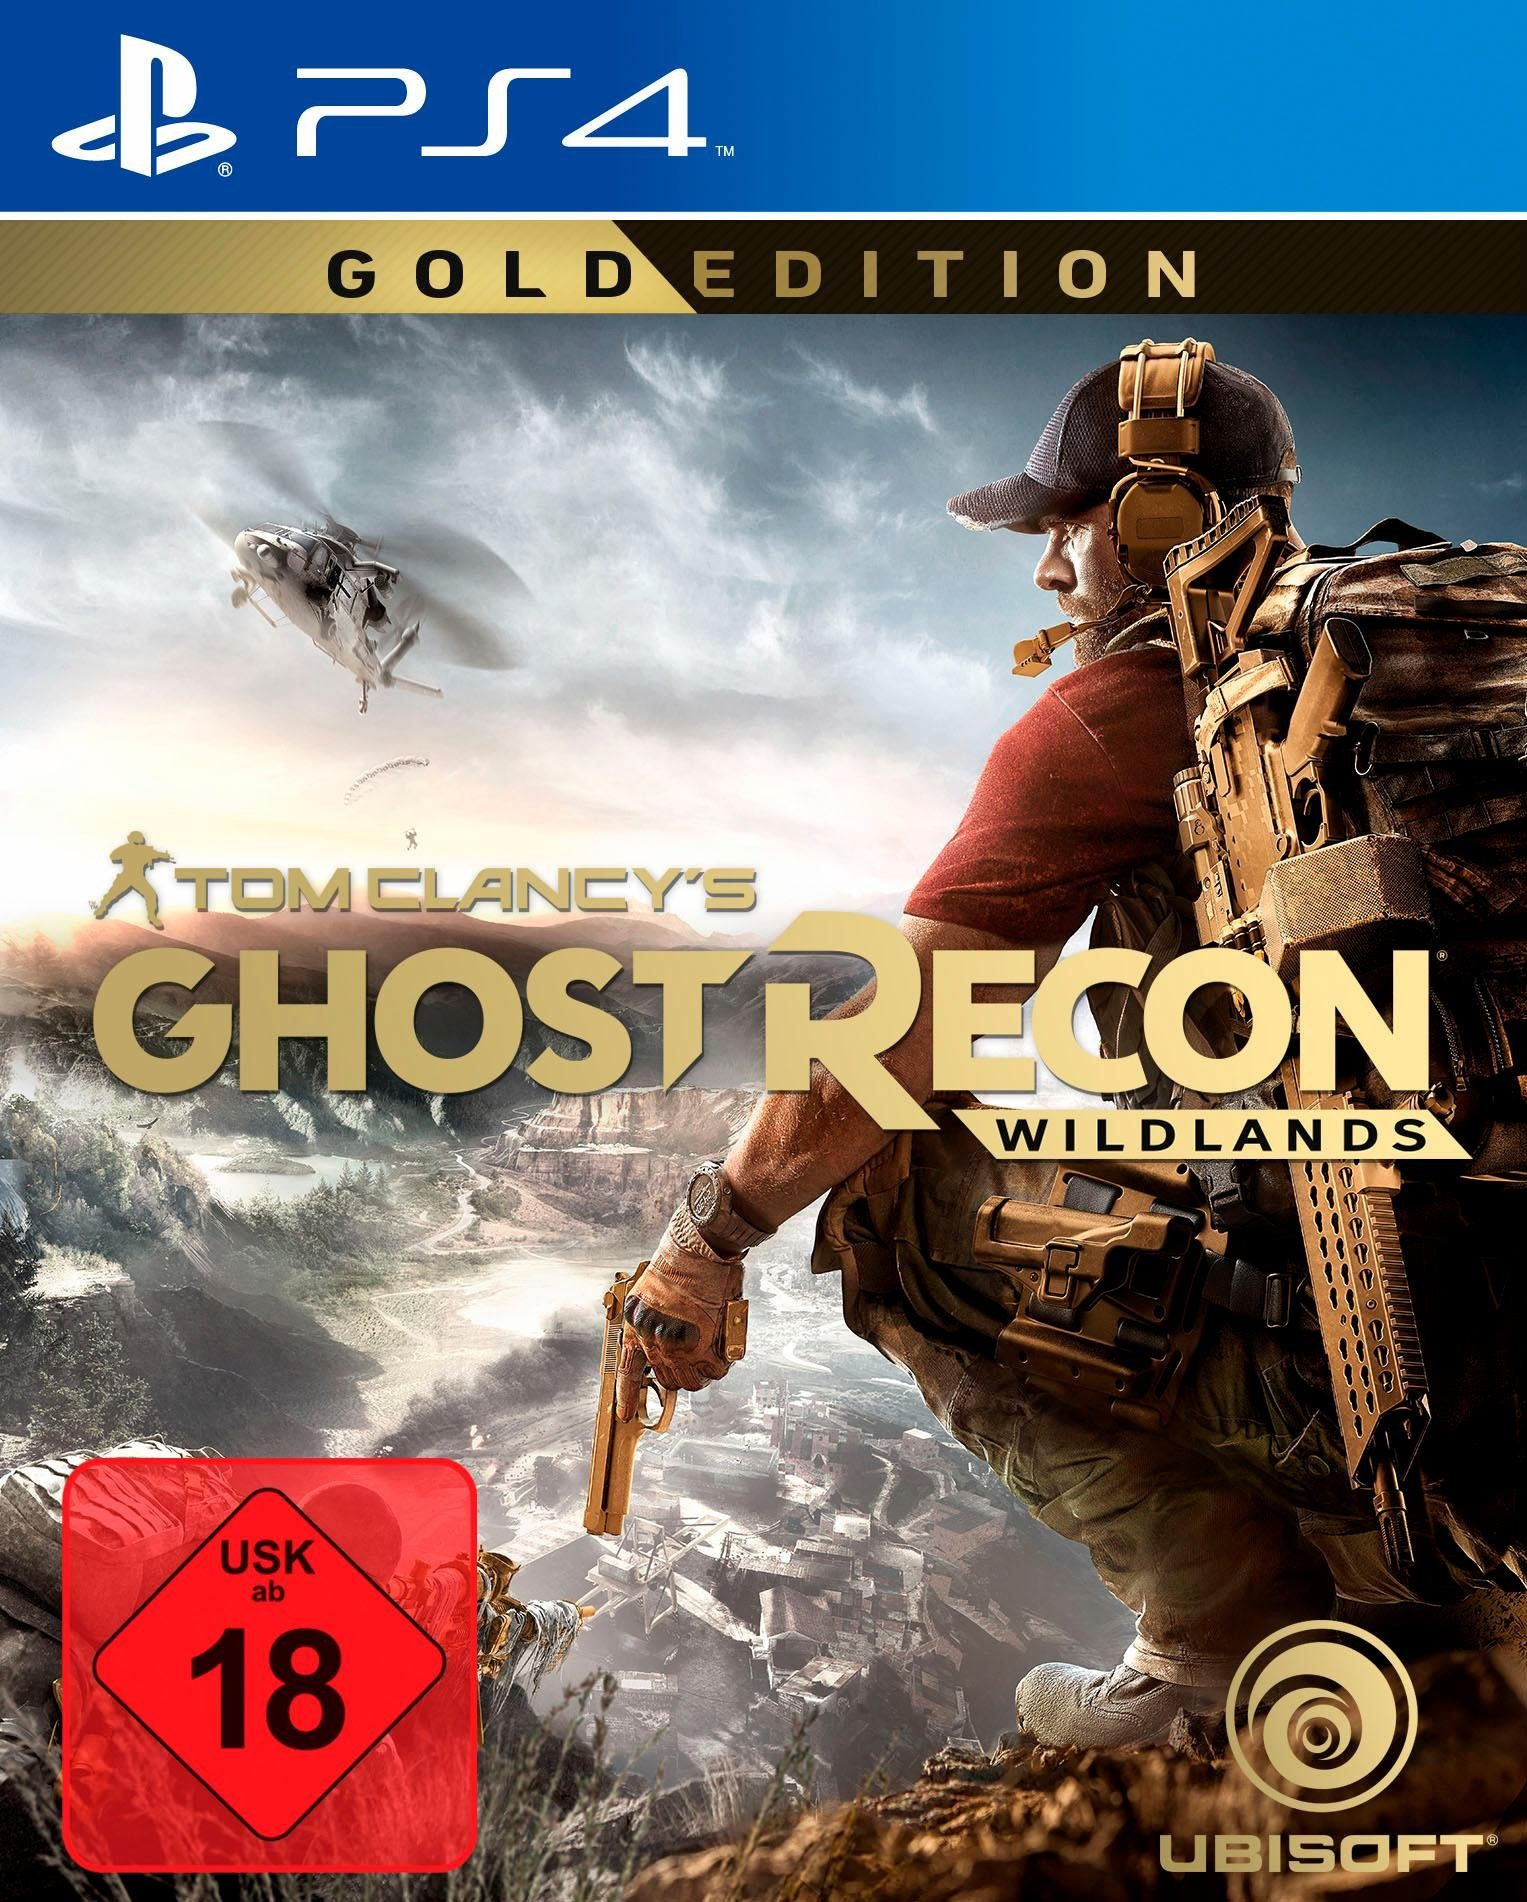 Tom Clancy's Ghost Recon Wildlands Gold Edition PlayStation 4